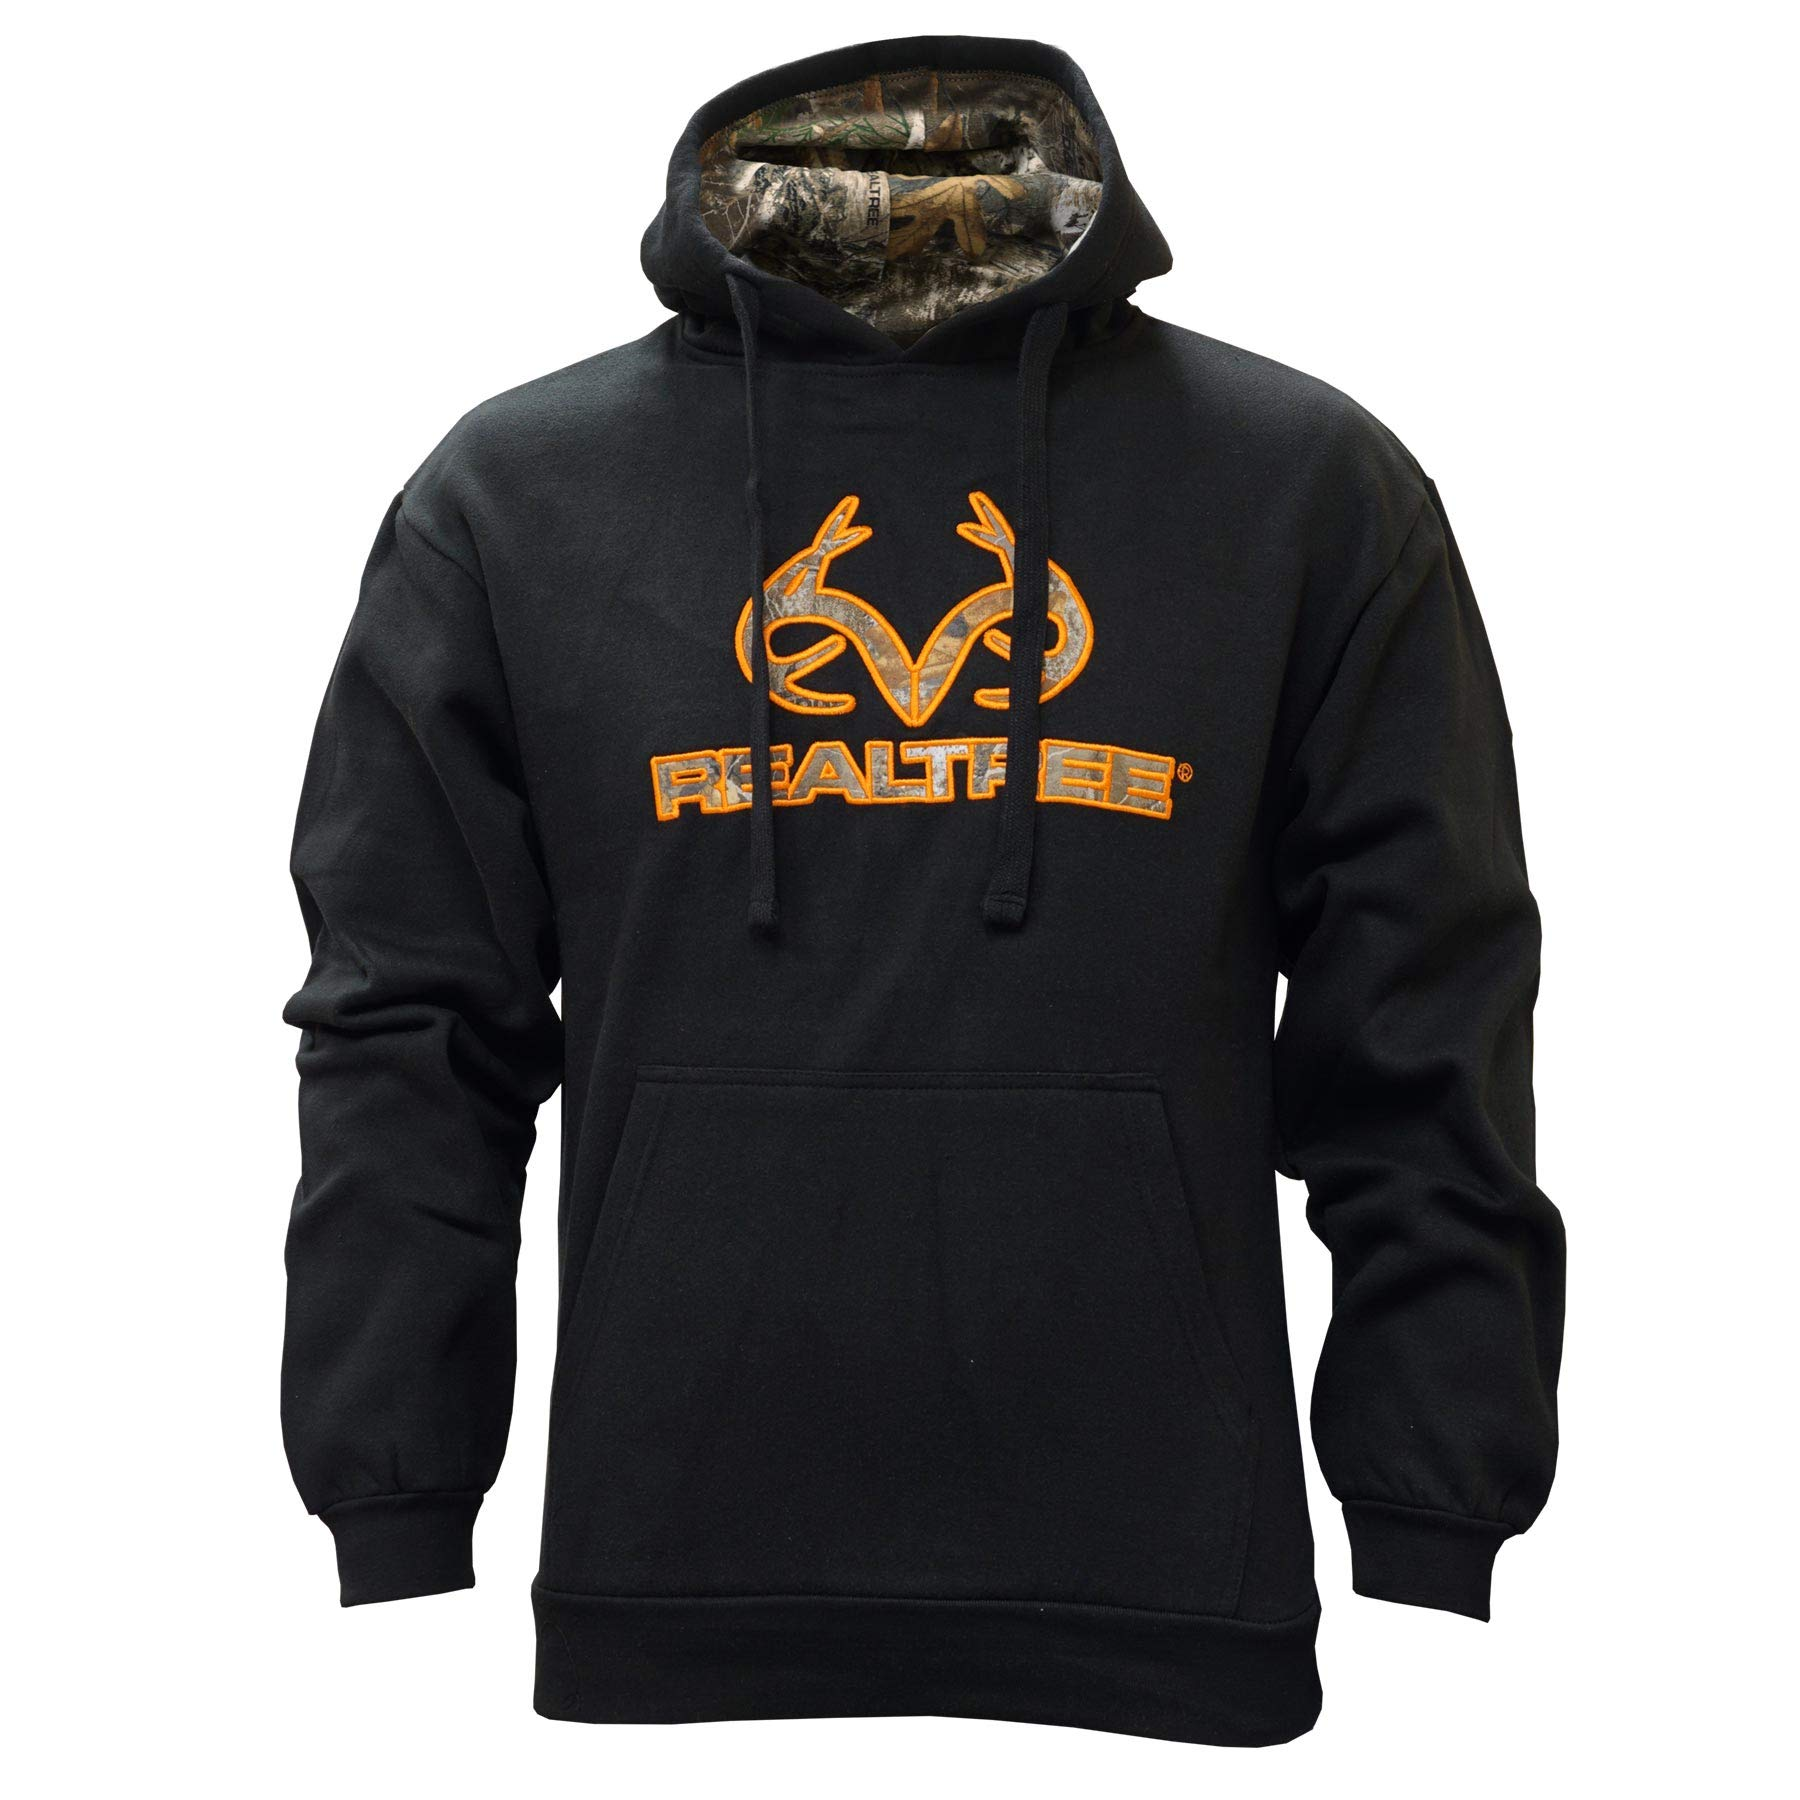 Staghorn Realtree Men's Fleece Applique Hoodie, Black, Small